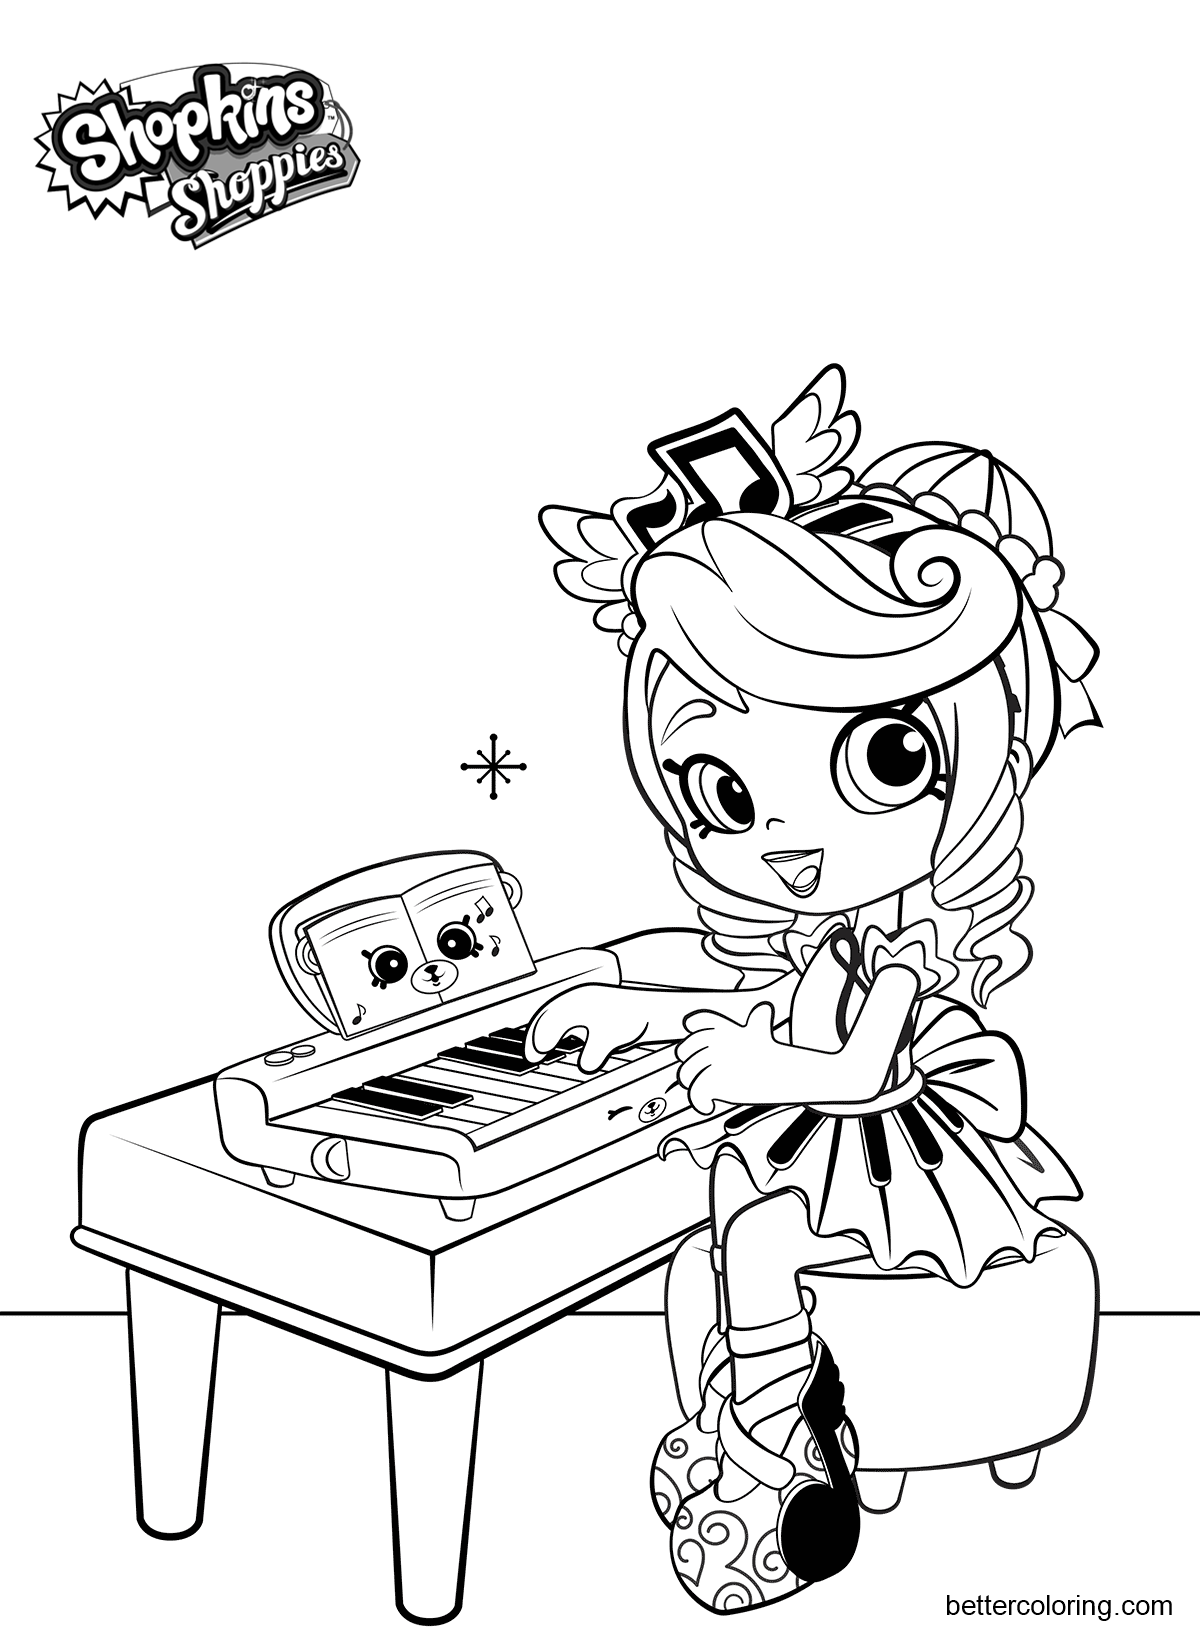 free shoppies coloring pages melodine printable for kids and adults